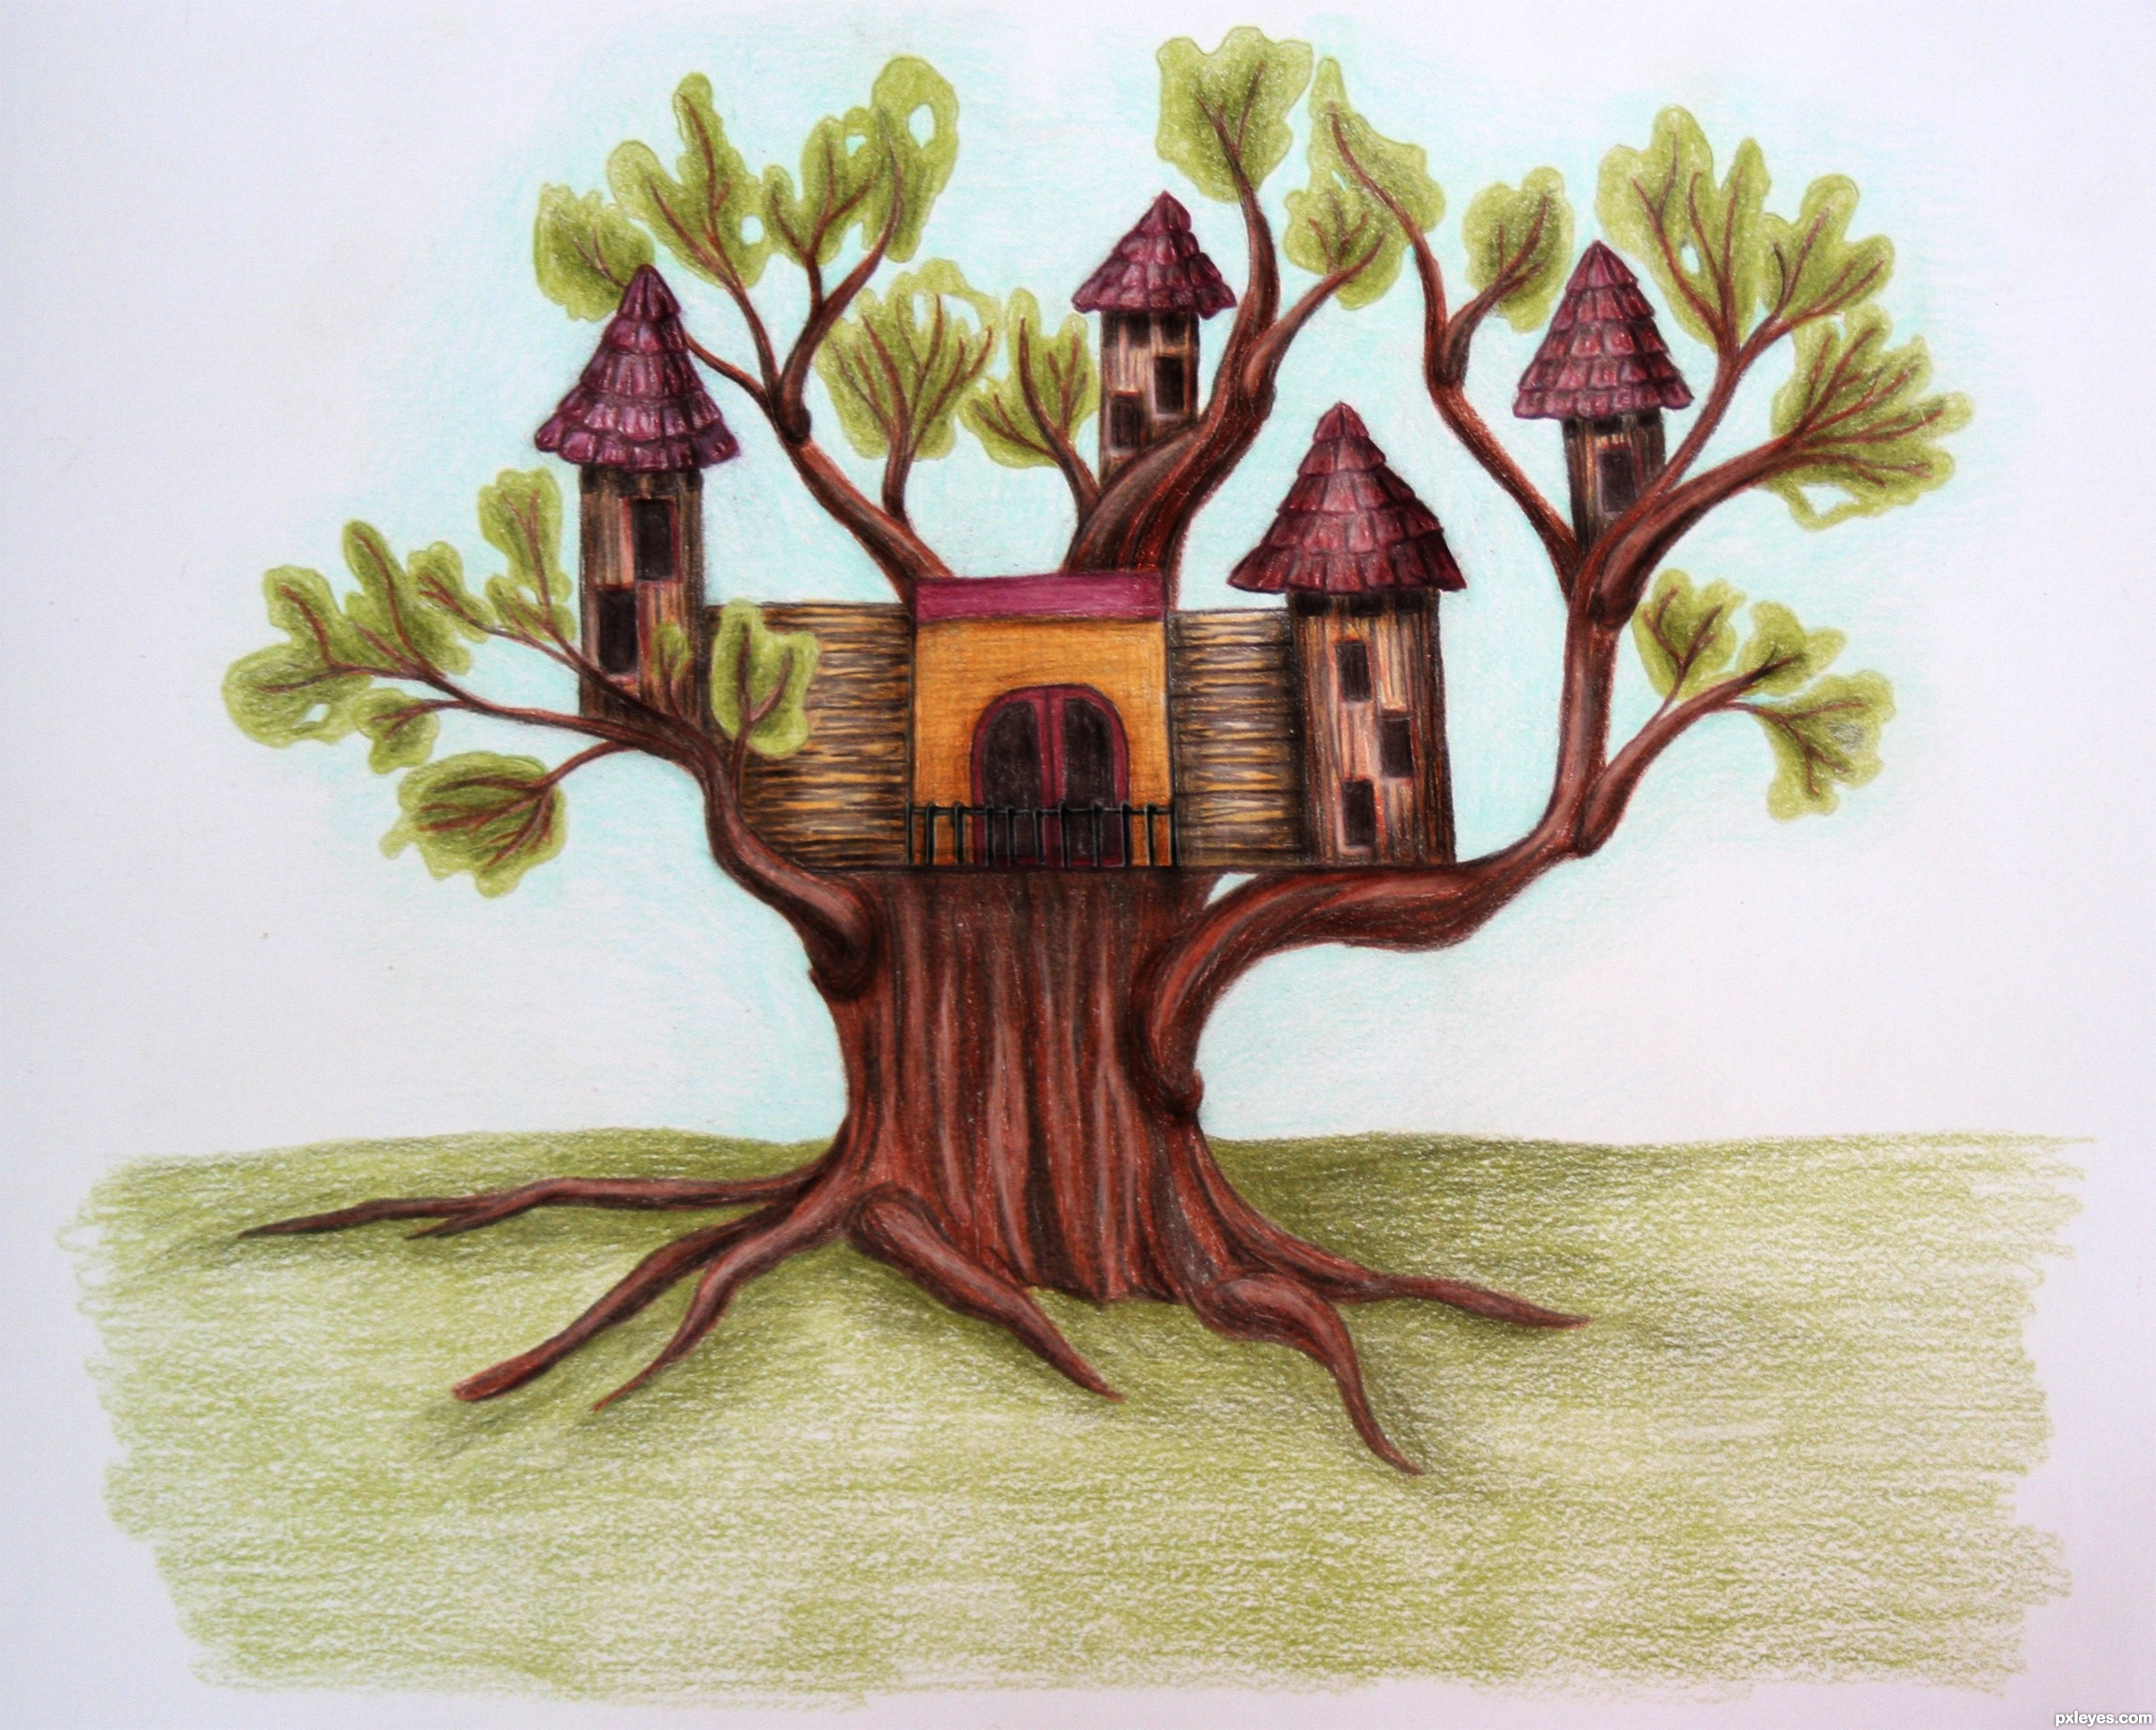 clip art freeuse library Castle picture by artbybambi. Drawing castles tree.